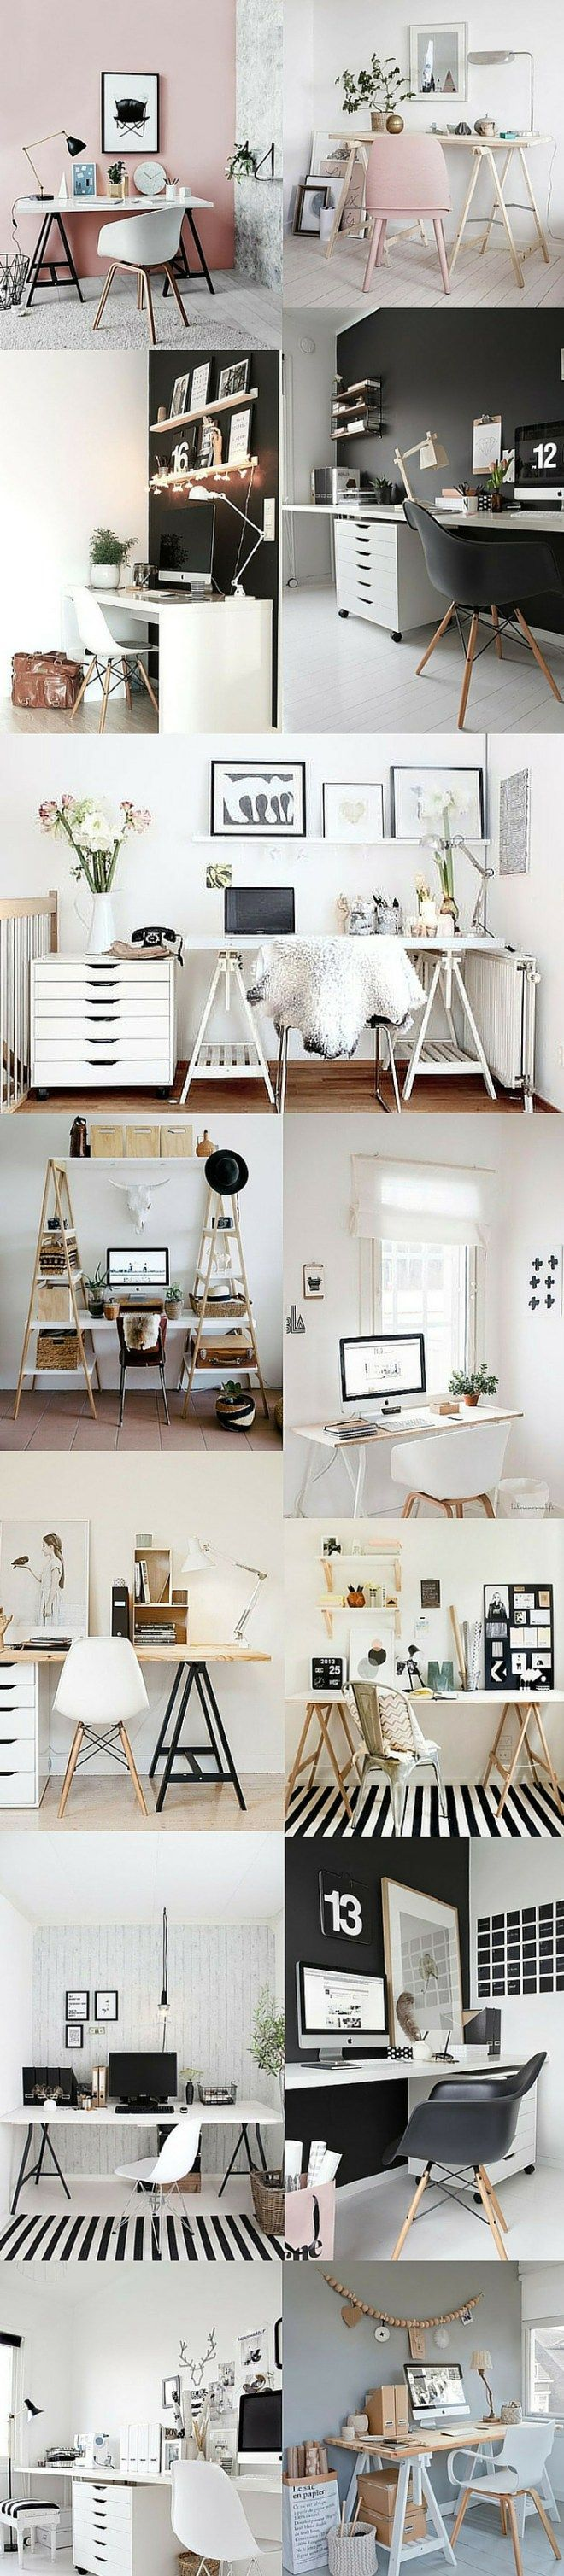 home+office+minimalista Mais #homedecor #decoration #decoración #interiores